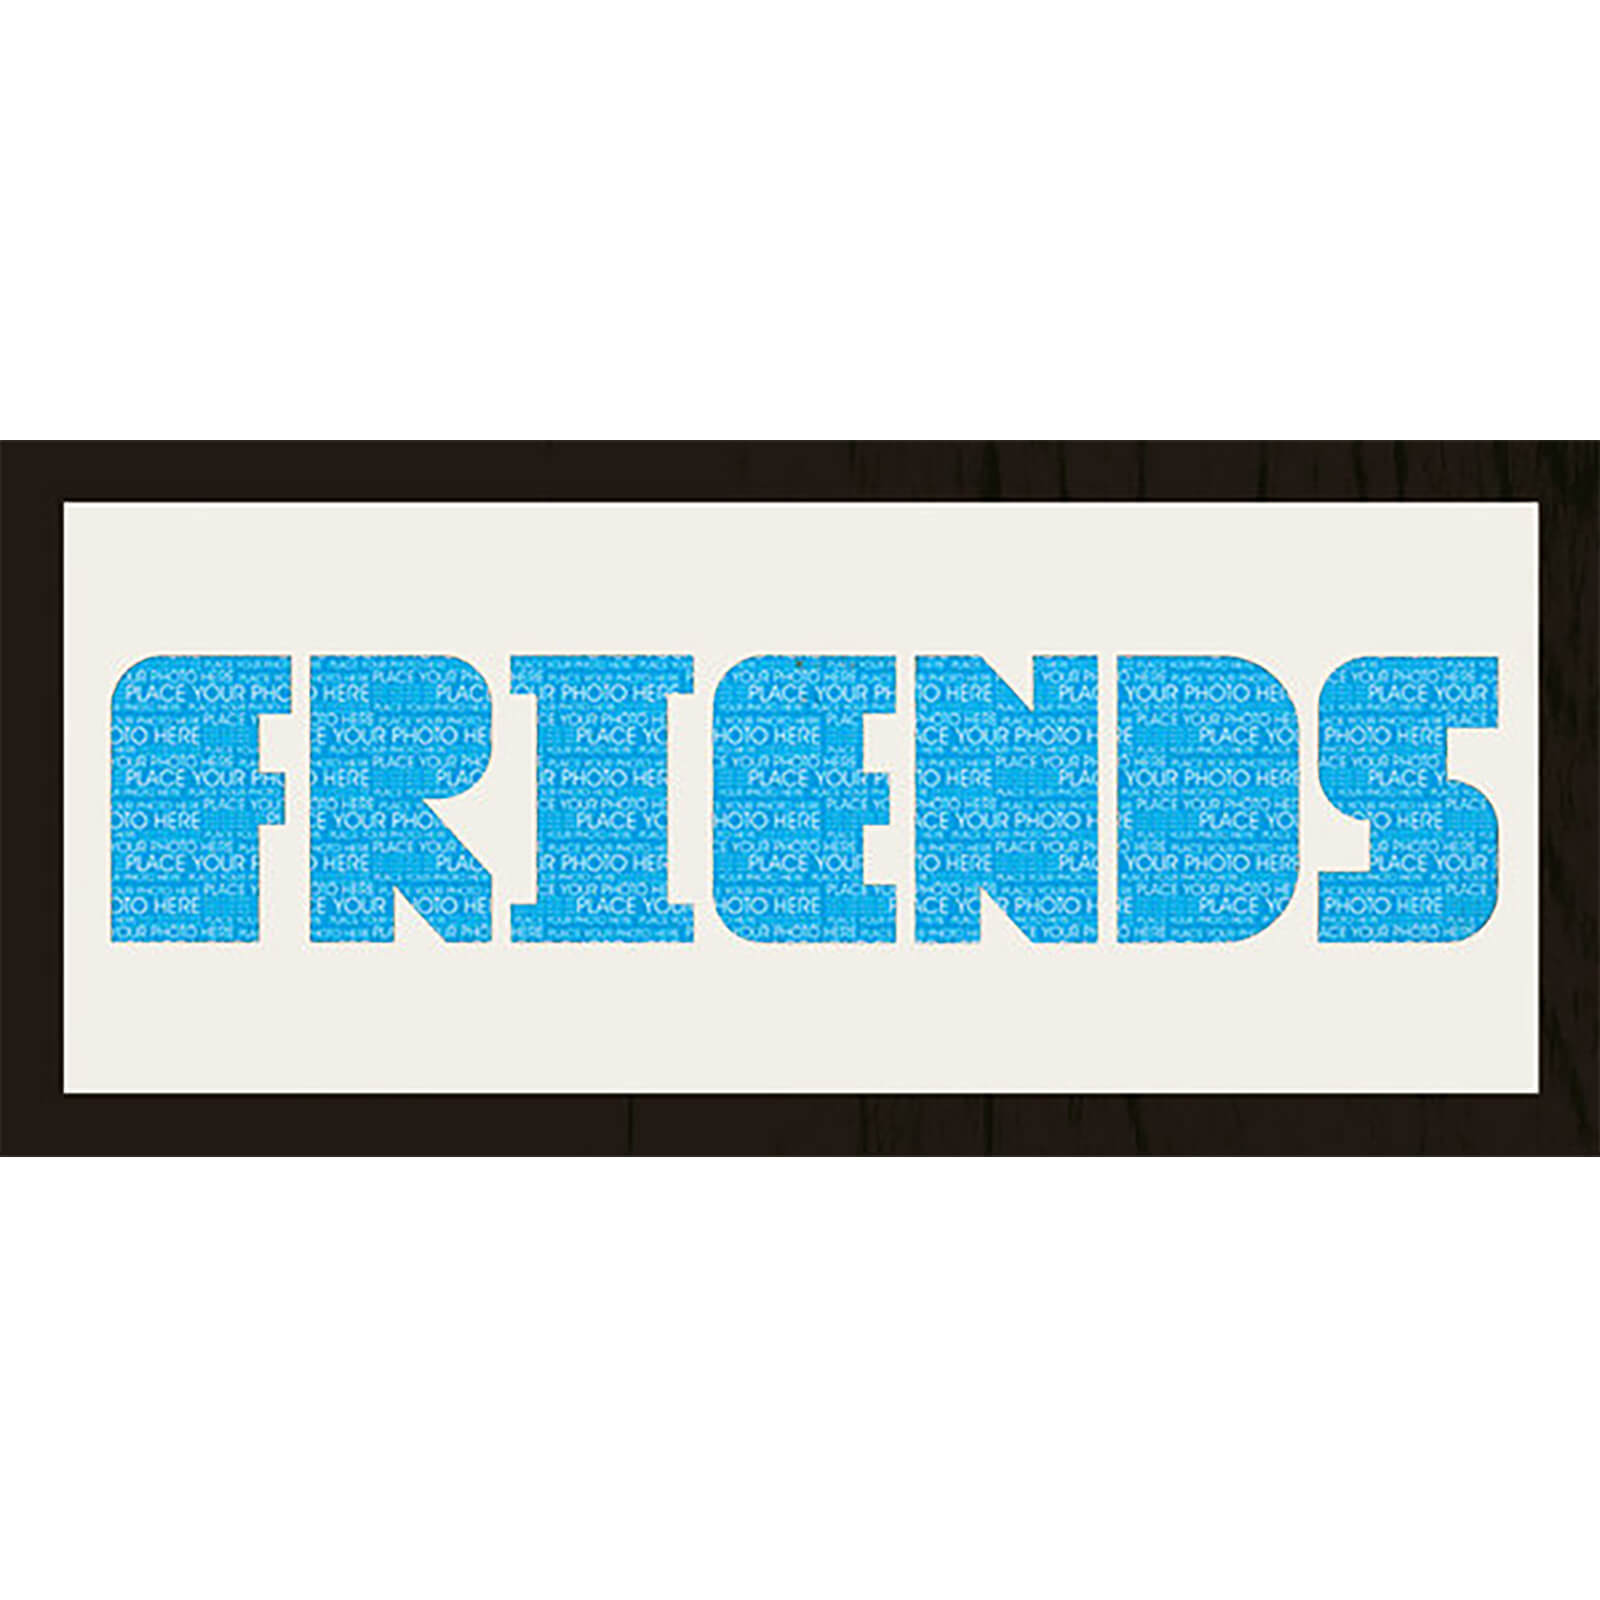 "GB Cream Mount Friends Photo Font - Framed Mount - 12"""" x 30"""